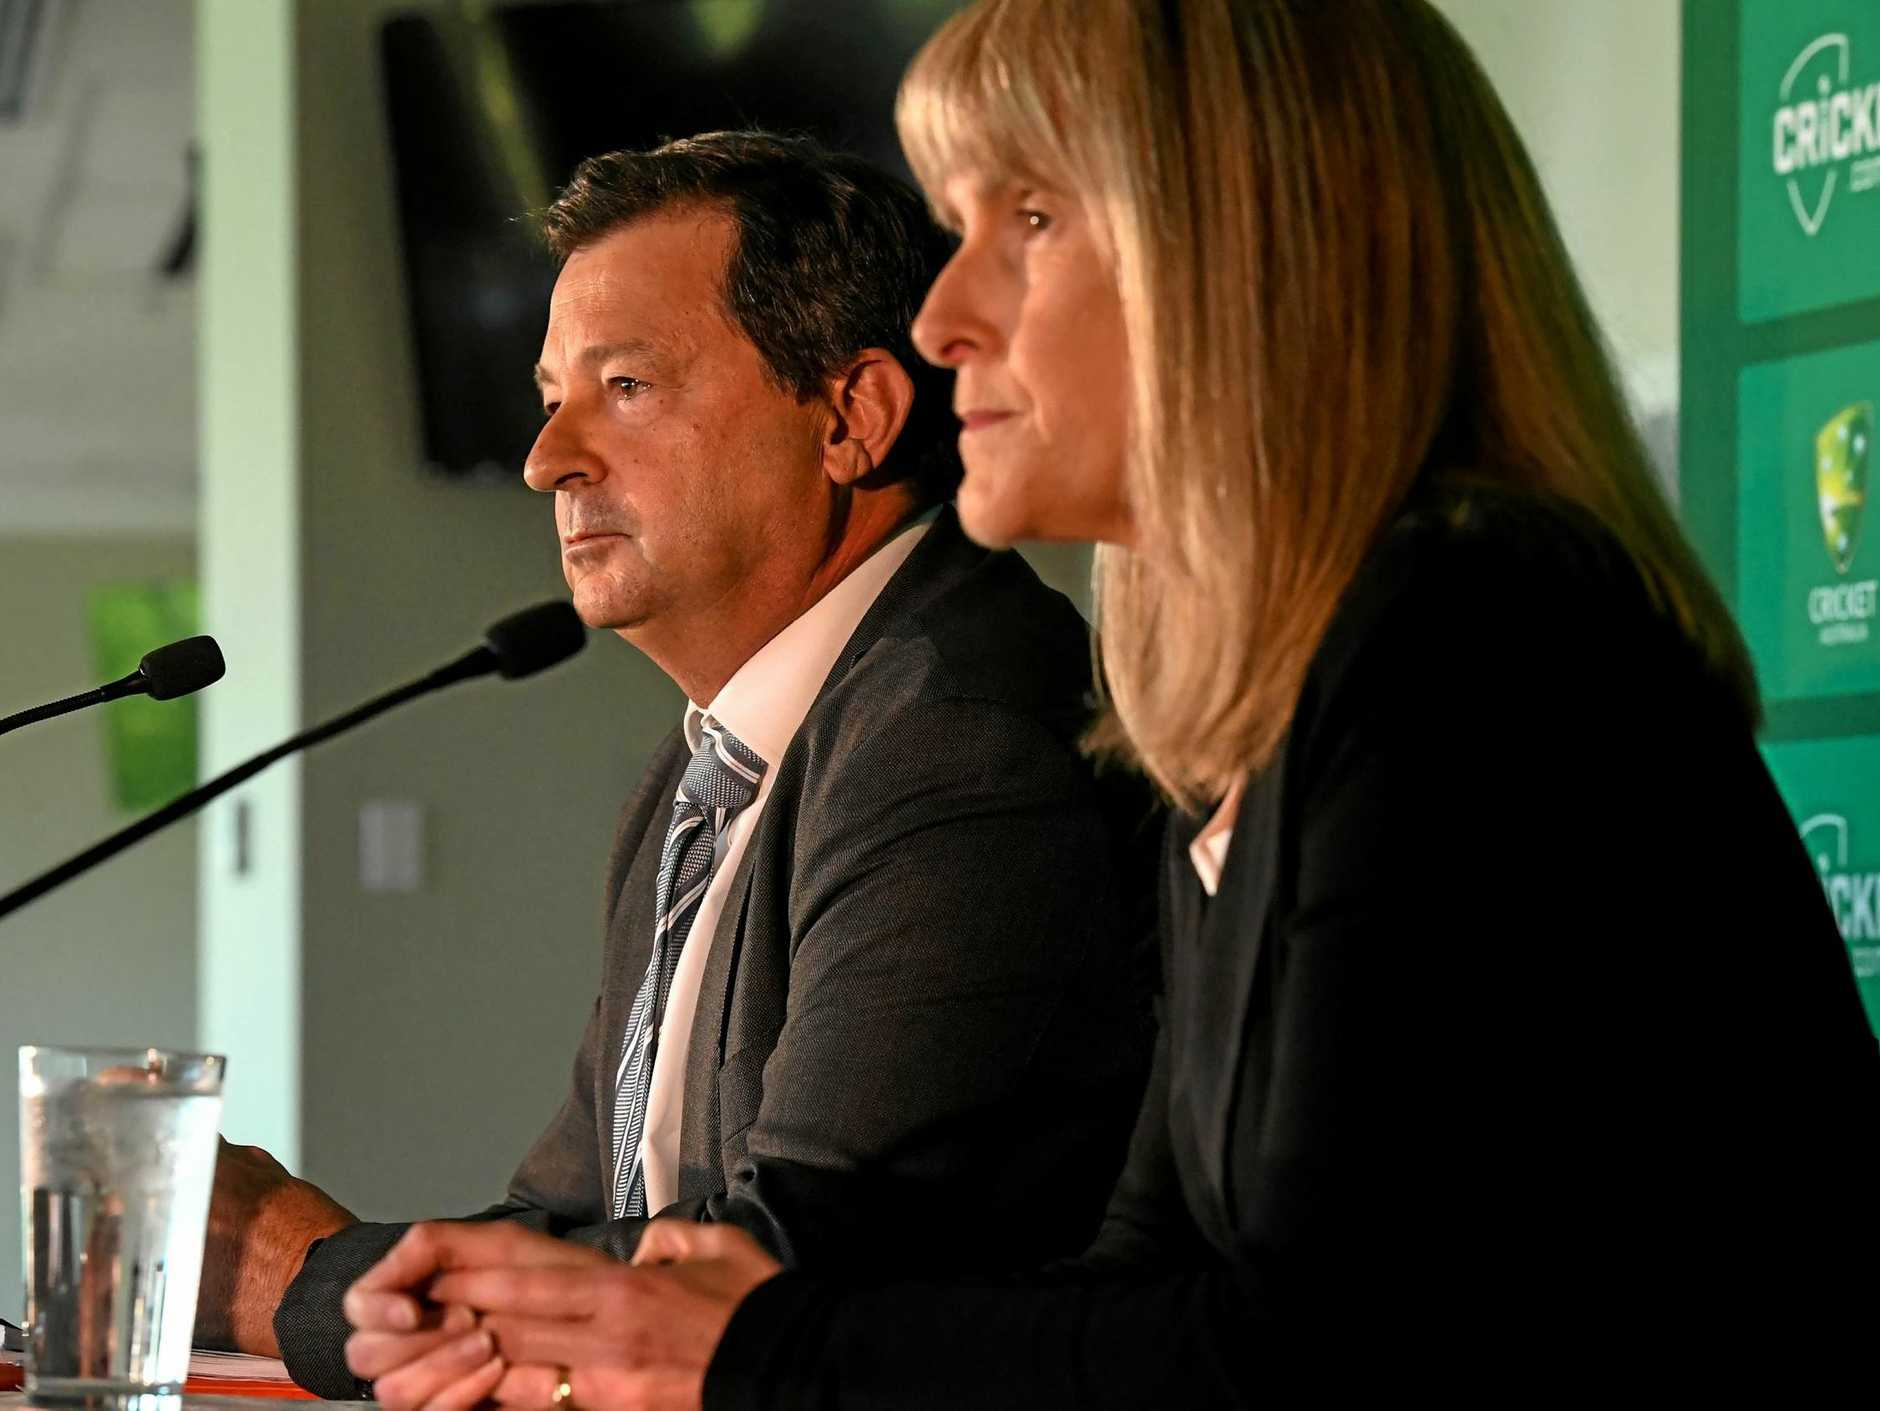 Then Cricket Australia chairman David Peever speaks to the media alongside review subcommittee chairwoman Jacquie Hey in Melbourne on Monday. Picture: Penny Stephens/AAP